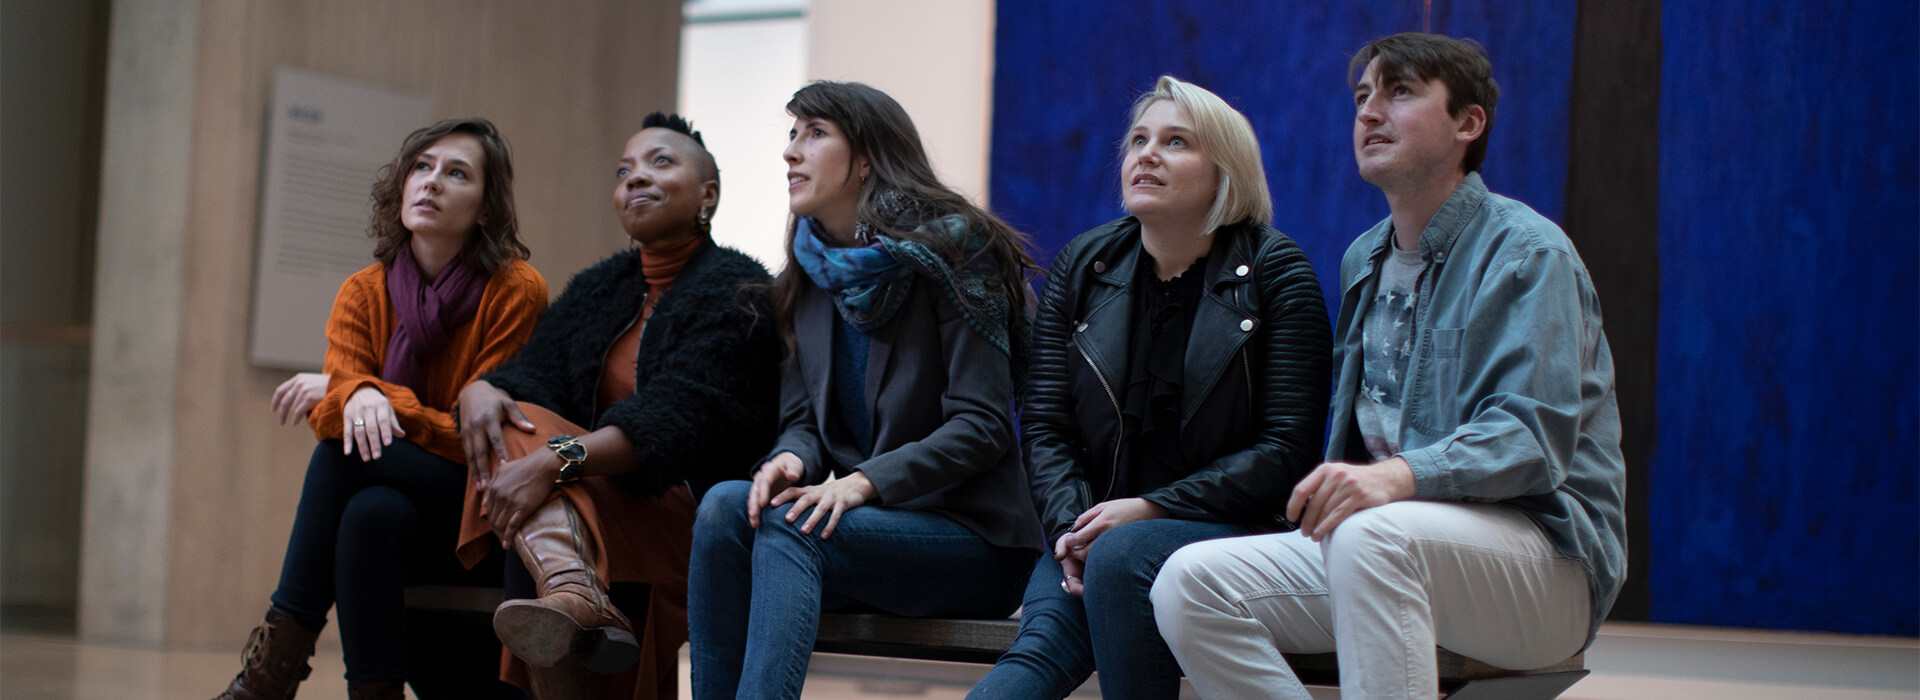 A group sits on a bench looking at art and talking about it